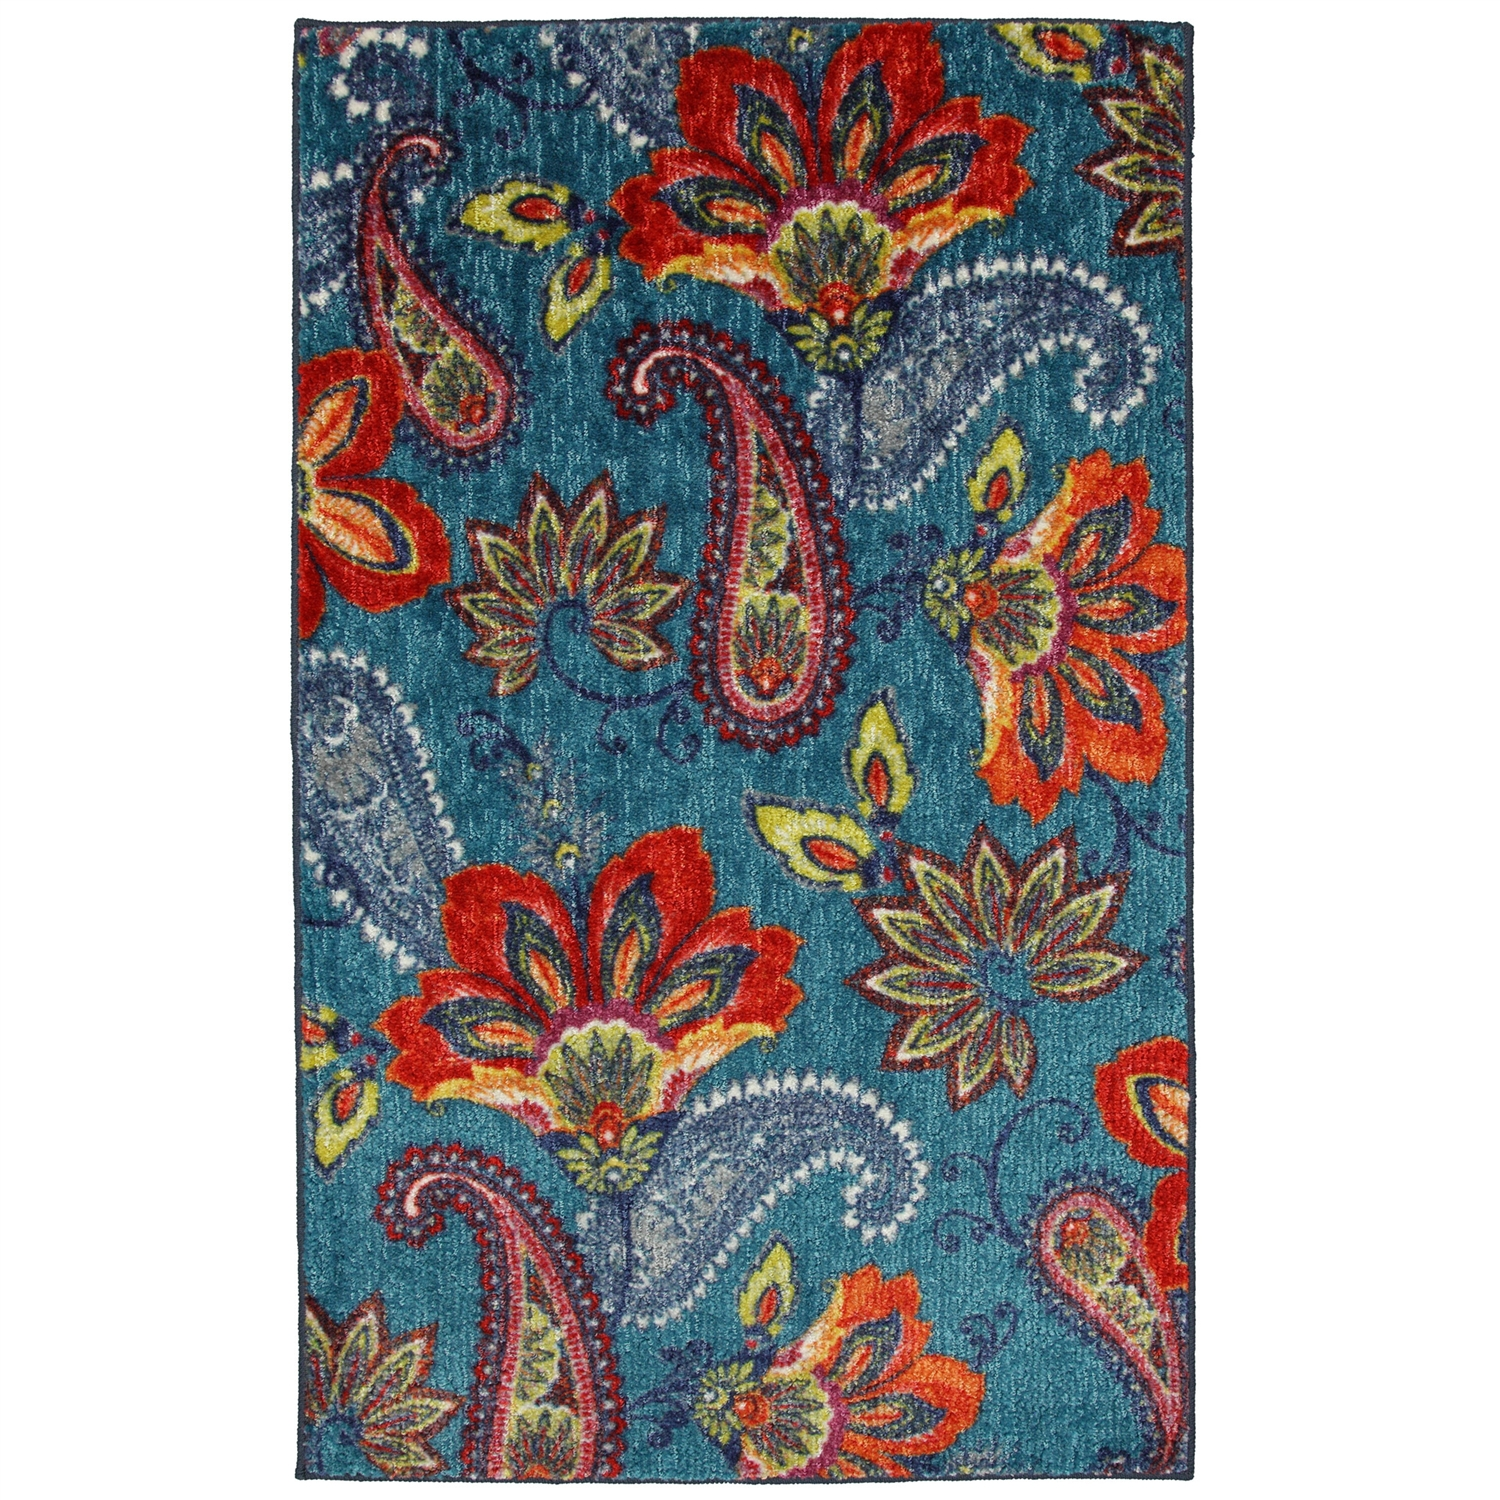 5' x 8' Floral Paisley Area Rug in Blue Teal Red Orange - Made in USA, NWMR5X8839 :  Cutting edge and beautifully designed, this 5' x 8' Floral Paisley Area Rug in Blue Teal Red Orange - Made in USA is an explosion of color and style. Meant for a bold impact, this design creates a vivid center point for your design. Printed on the same machines that manufacture one of the world's leading brands of printed carpet, this rug is extremely durable and vibrant. This technology allows the use of multiple colors to create a rug that is wonderfully designed and applicable to any room in your home. Action backing; Area rugs should be spot cleaned with a solution of mild detergent and water or cleaned professionally; Regular vacuuming helps rugs remain attractive and serviceable; Primary Pattern: Floral And Plants; Primary Color: Multi Colored; Material: Synthetic; Country of Manufacture: United States.